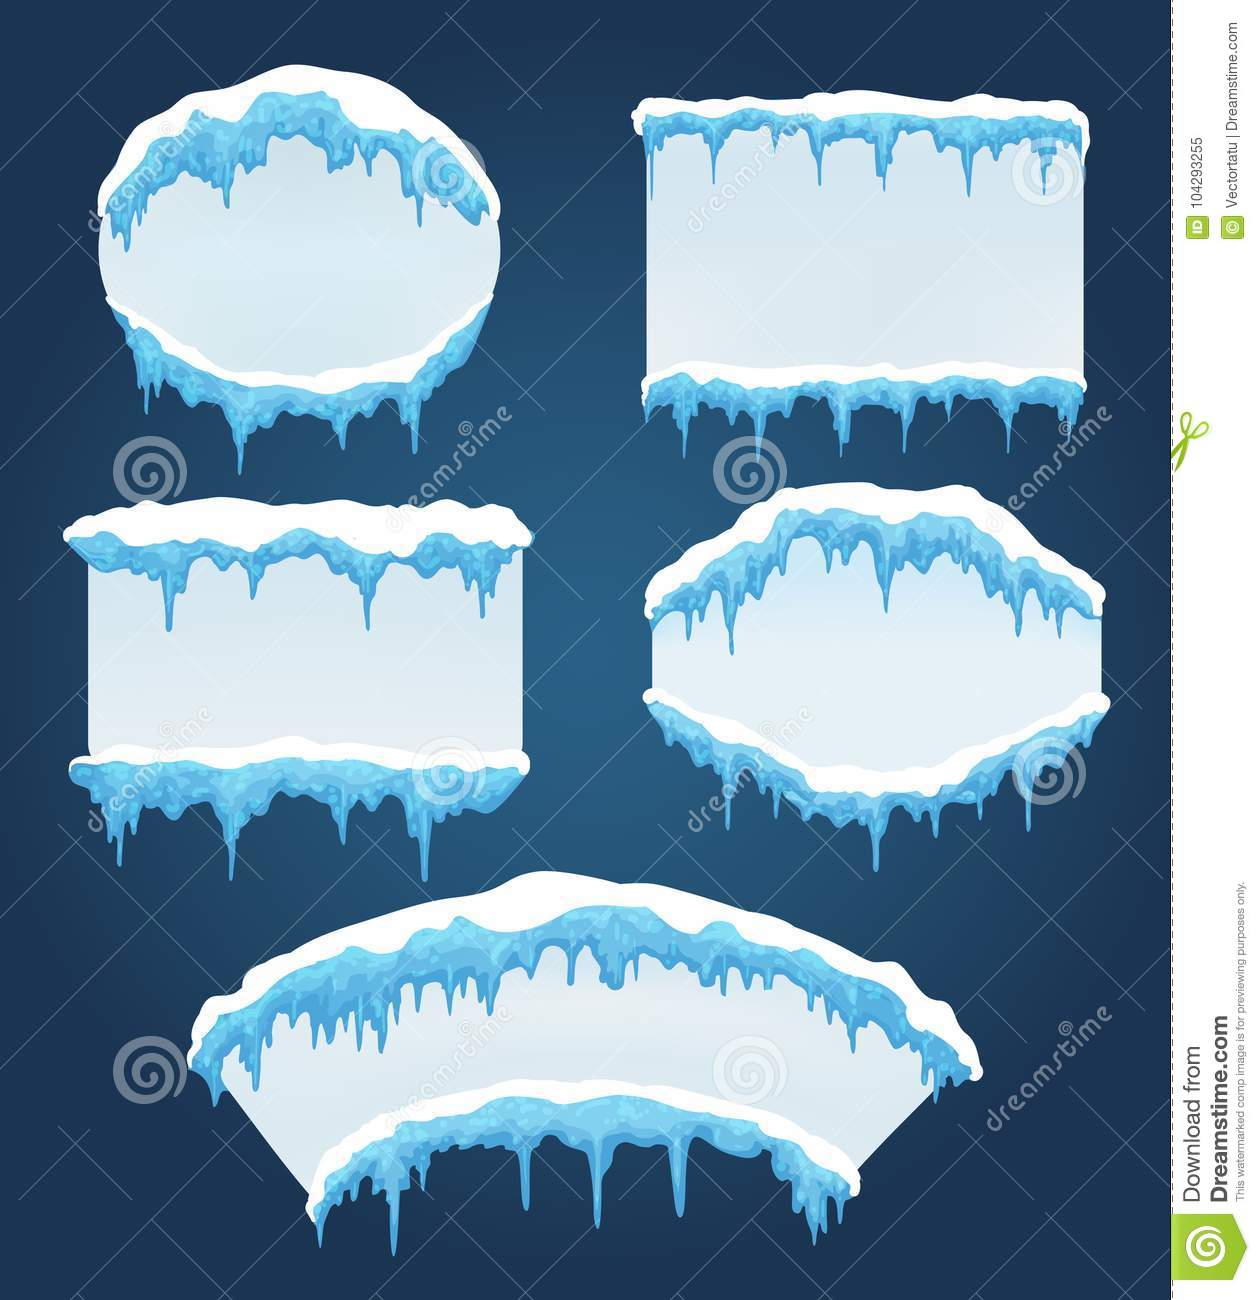 Icicles boards for sale stock vector. Illustration of frame - 104293255